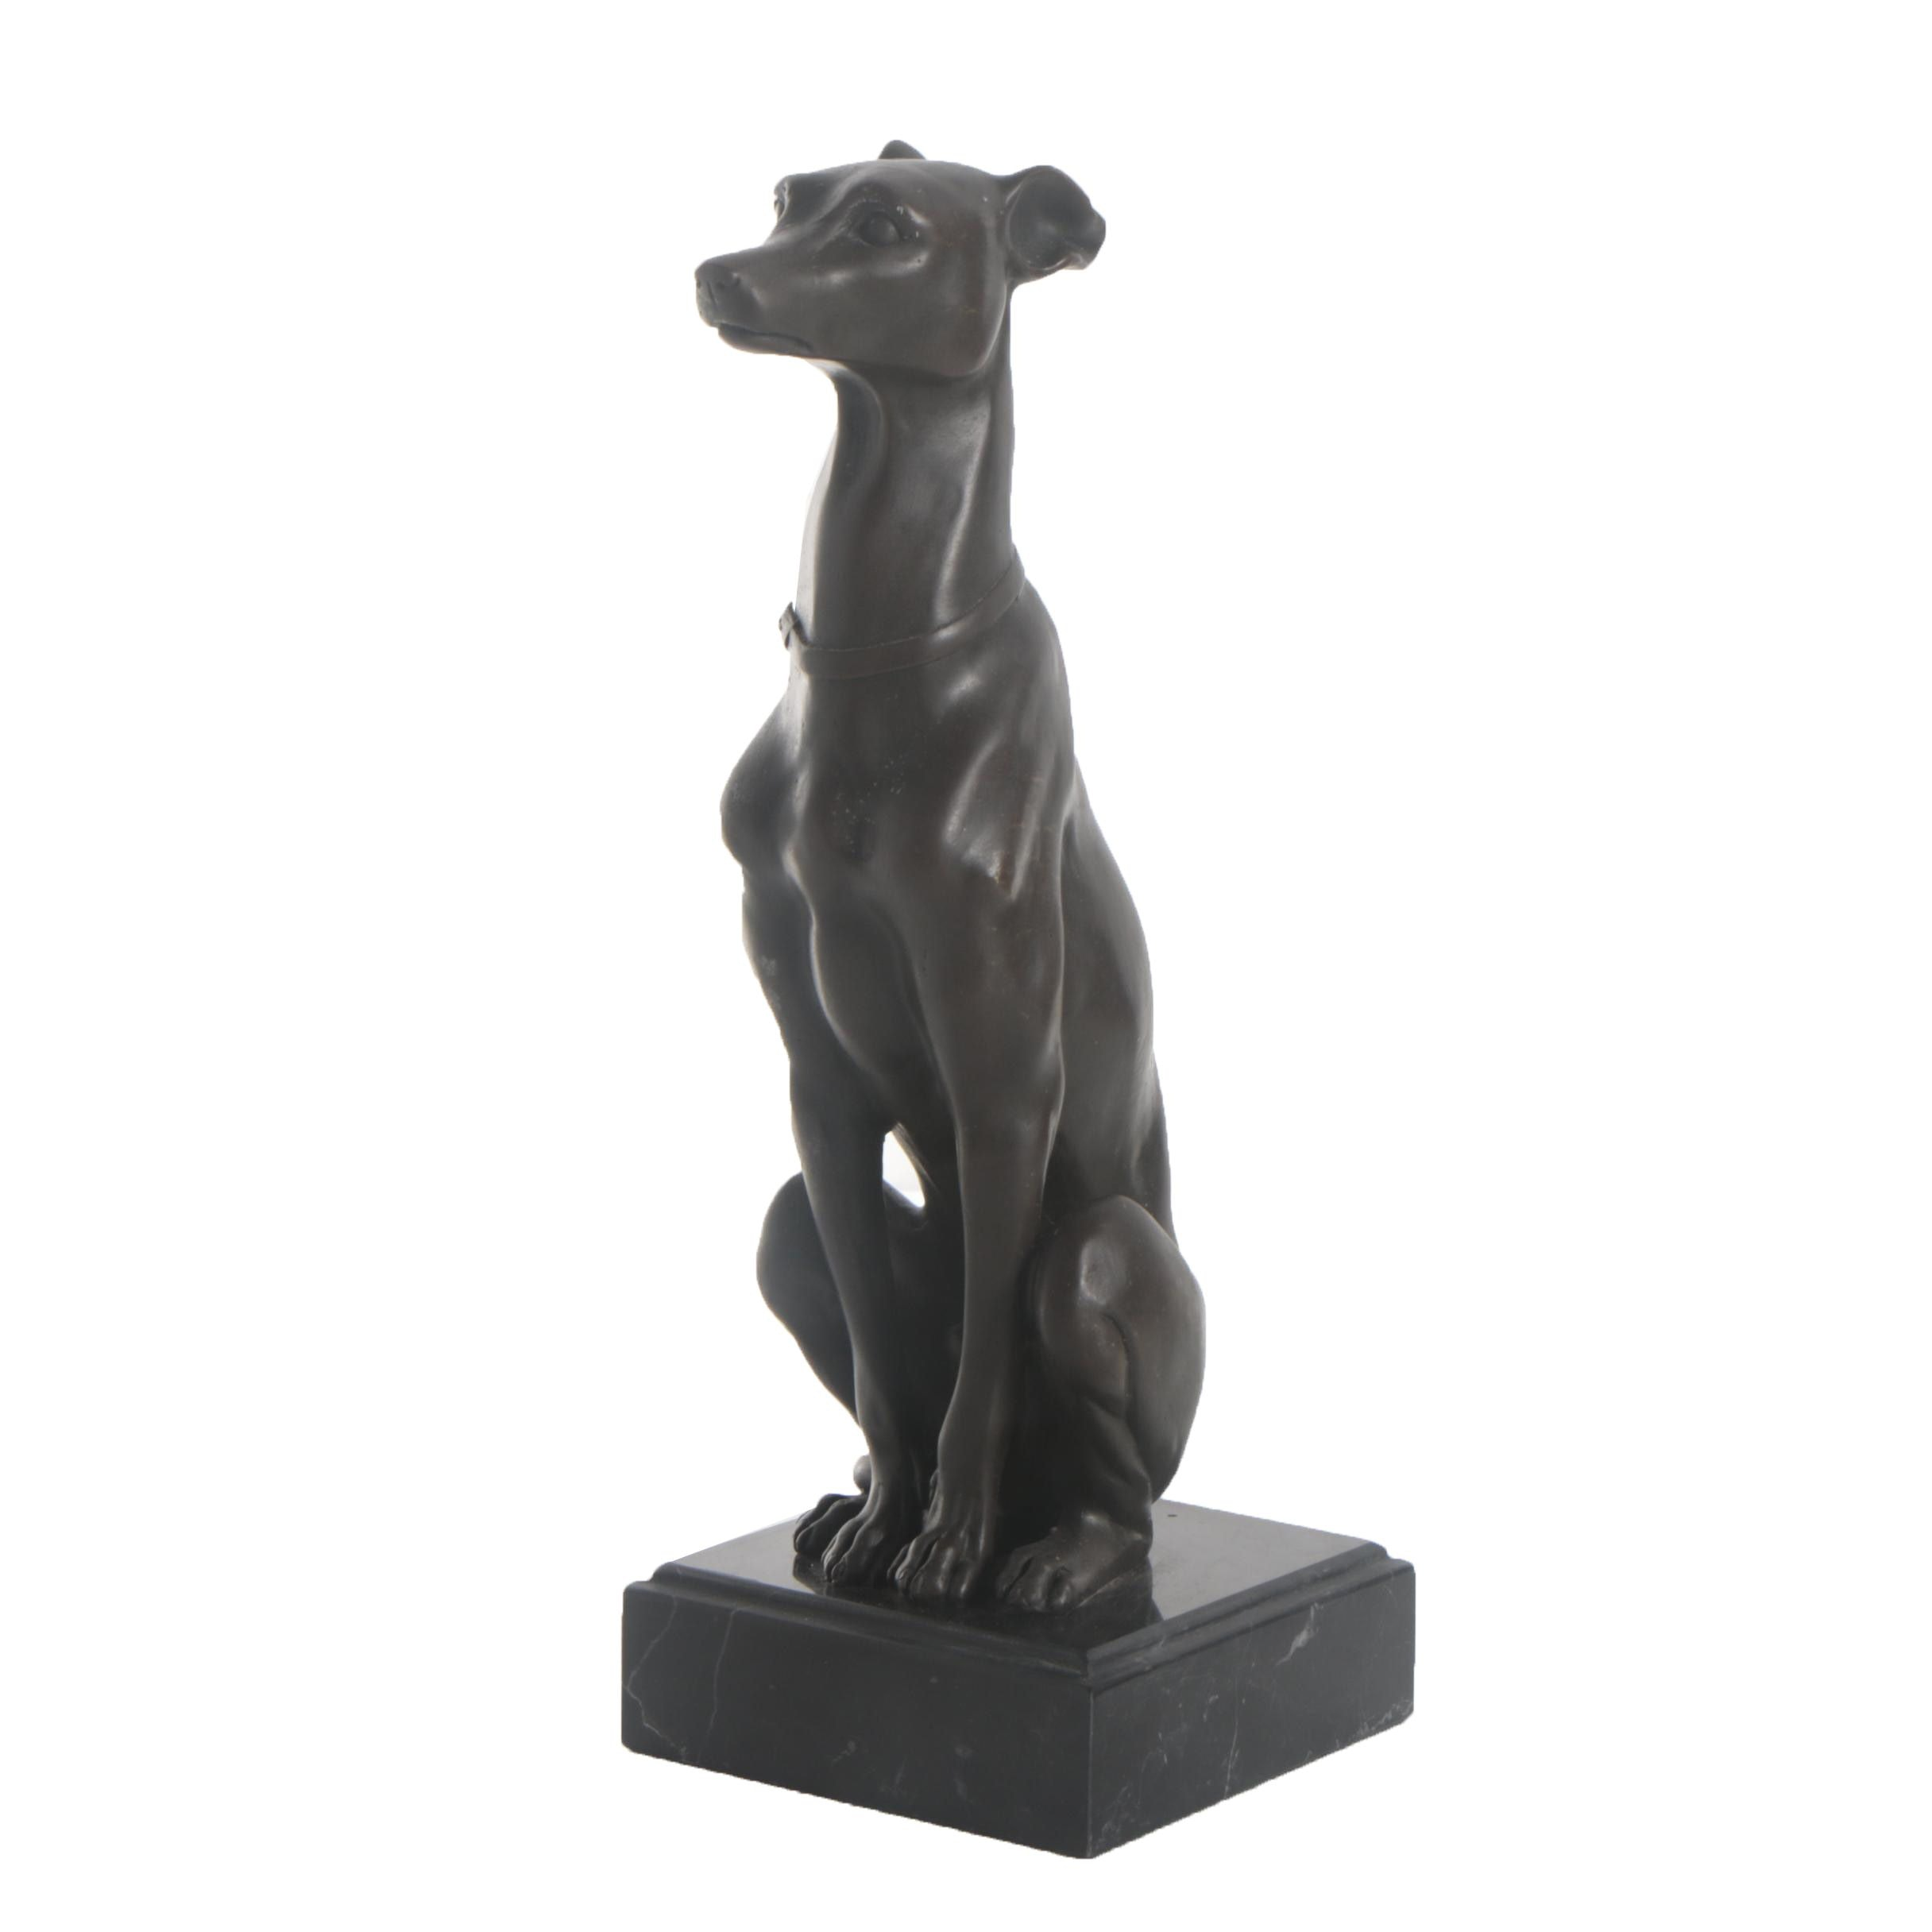 Cold Cast Bronze Greyhound Sculpture after Antoine-Louis Barye